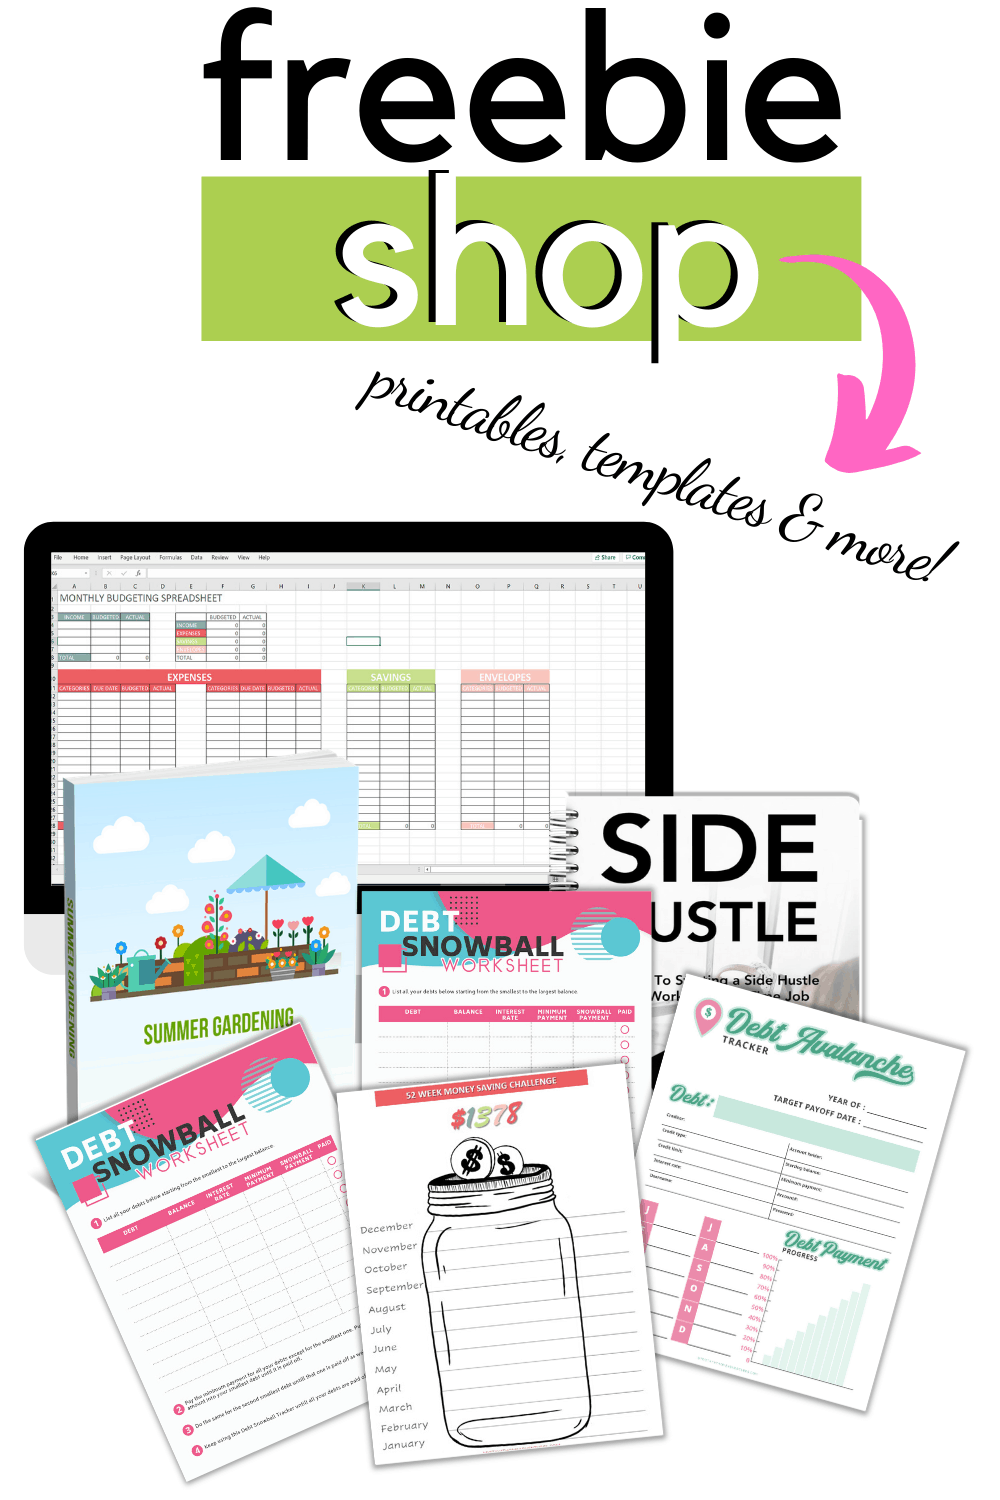 Download and find the best freebies we have to offer. Find planners, printables, and free online courses at no cost to you. #freebies #freeprintables #free #freebiefriday via @mystayathome